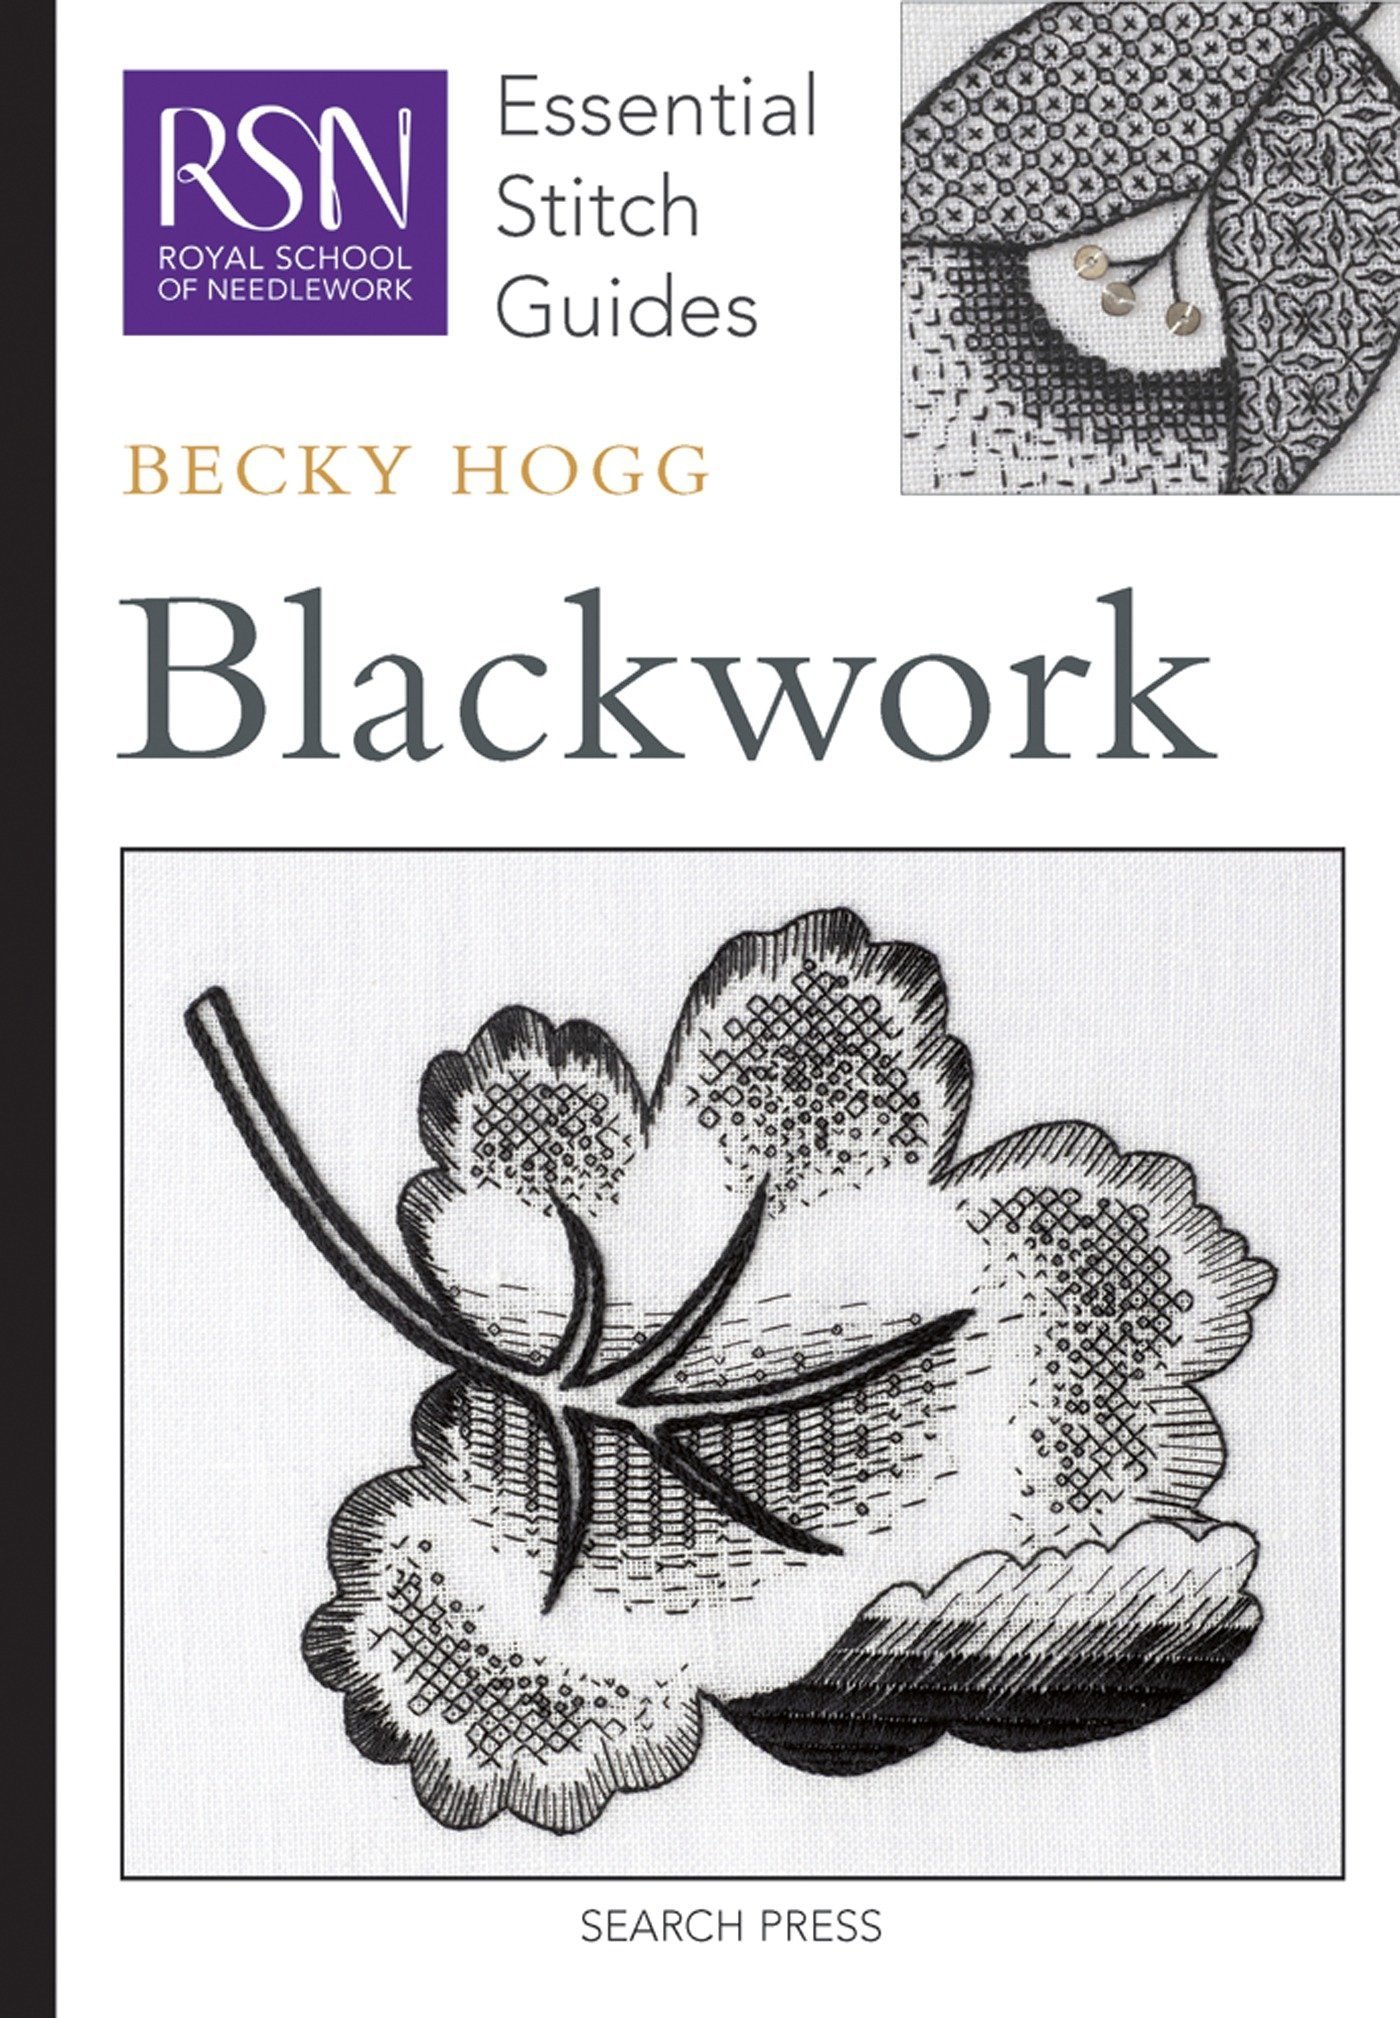 RSN ESG: Blackwork: Essential Stitch Guides (Royal School of Needlework Essential Stitch Guides)